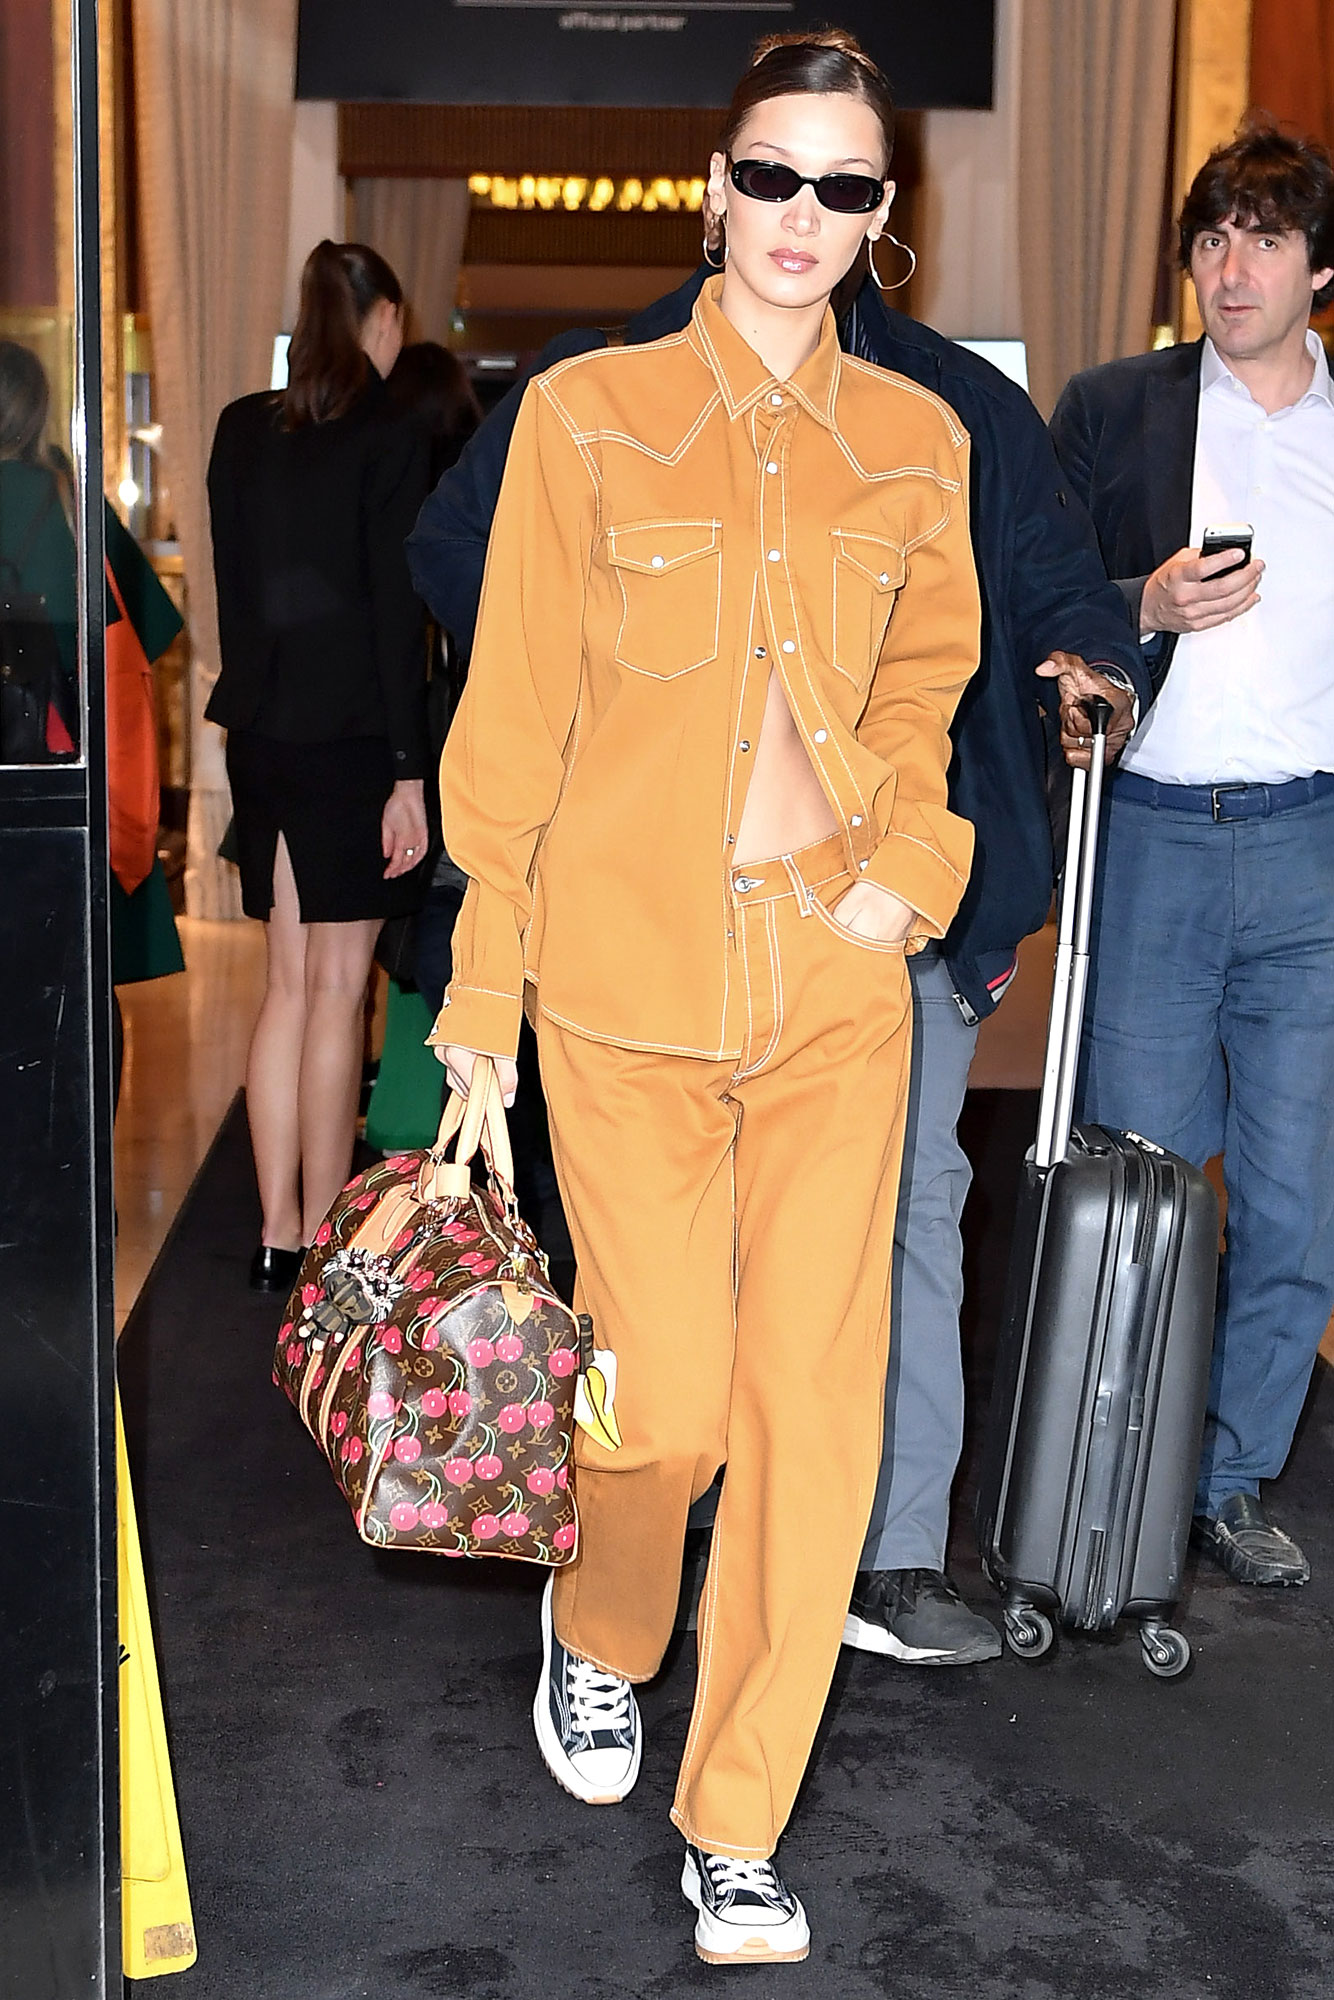 Stepping Out in Style at Cannes Film Festival - The model was seen departing her hotel on Saturday, May 18, in an ab-baring Sandro top and matching trousers. She accessorized with JW Anderson x Converse sneakers, Le Specs shades and a Louis Vuitton duffle.